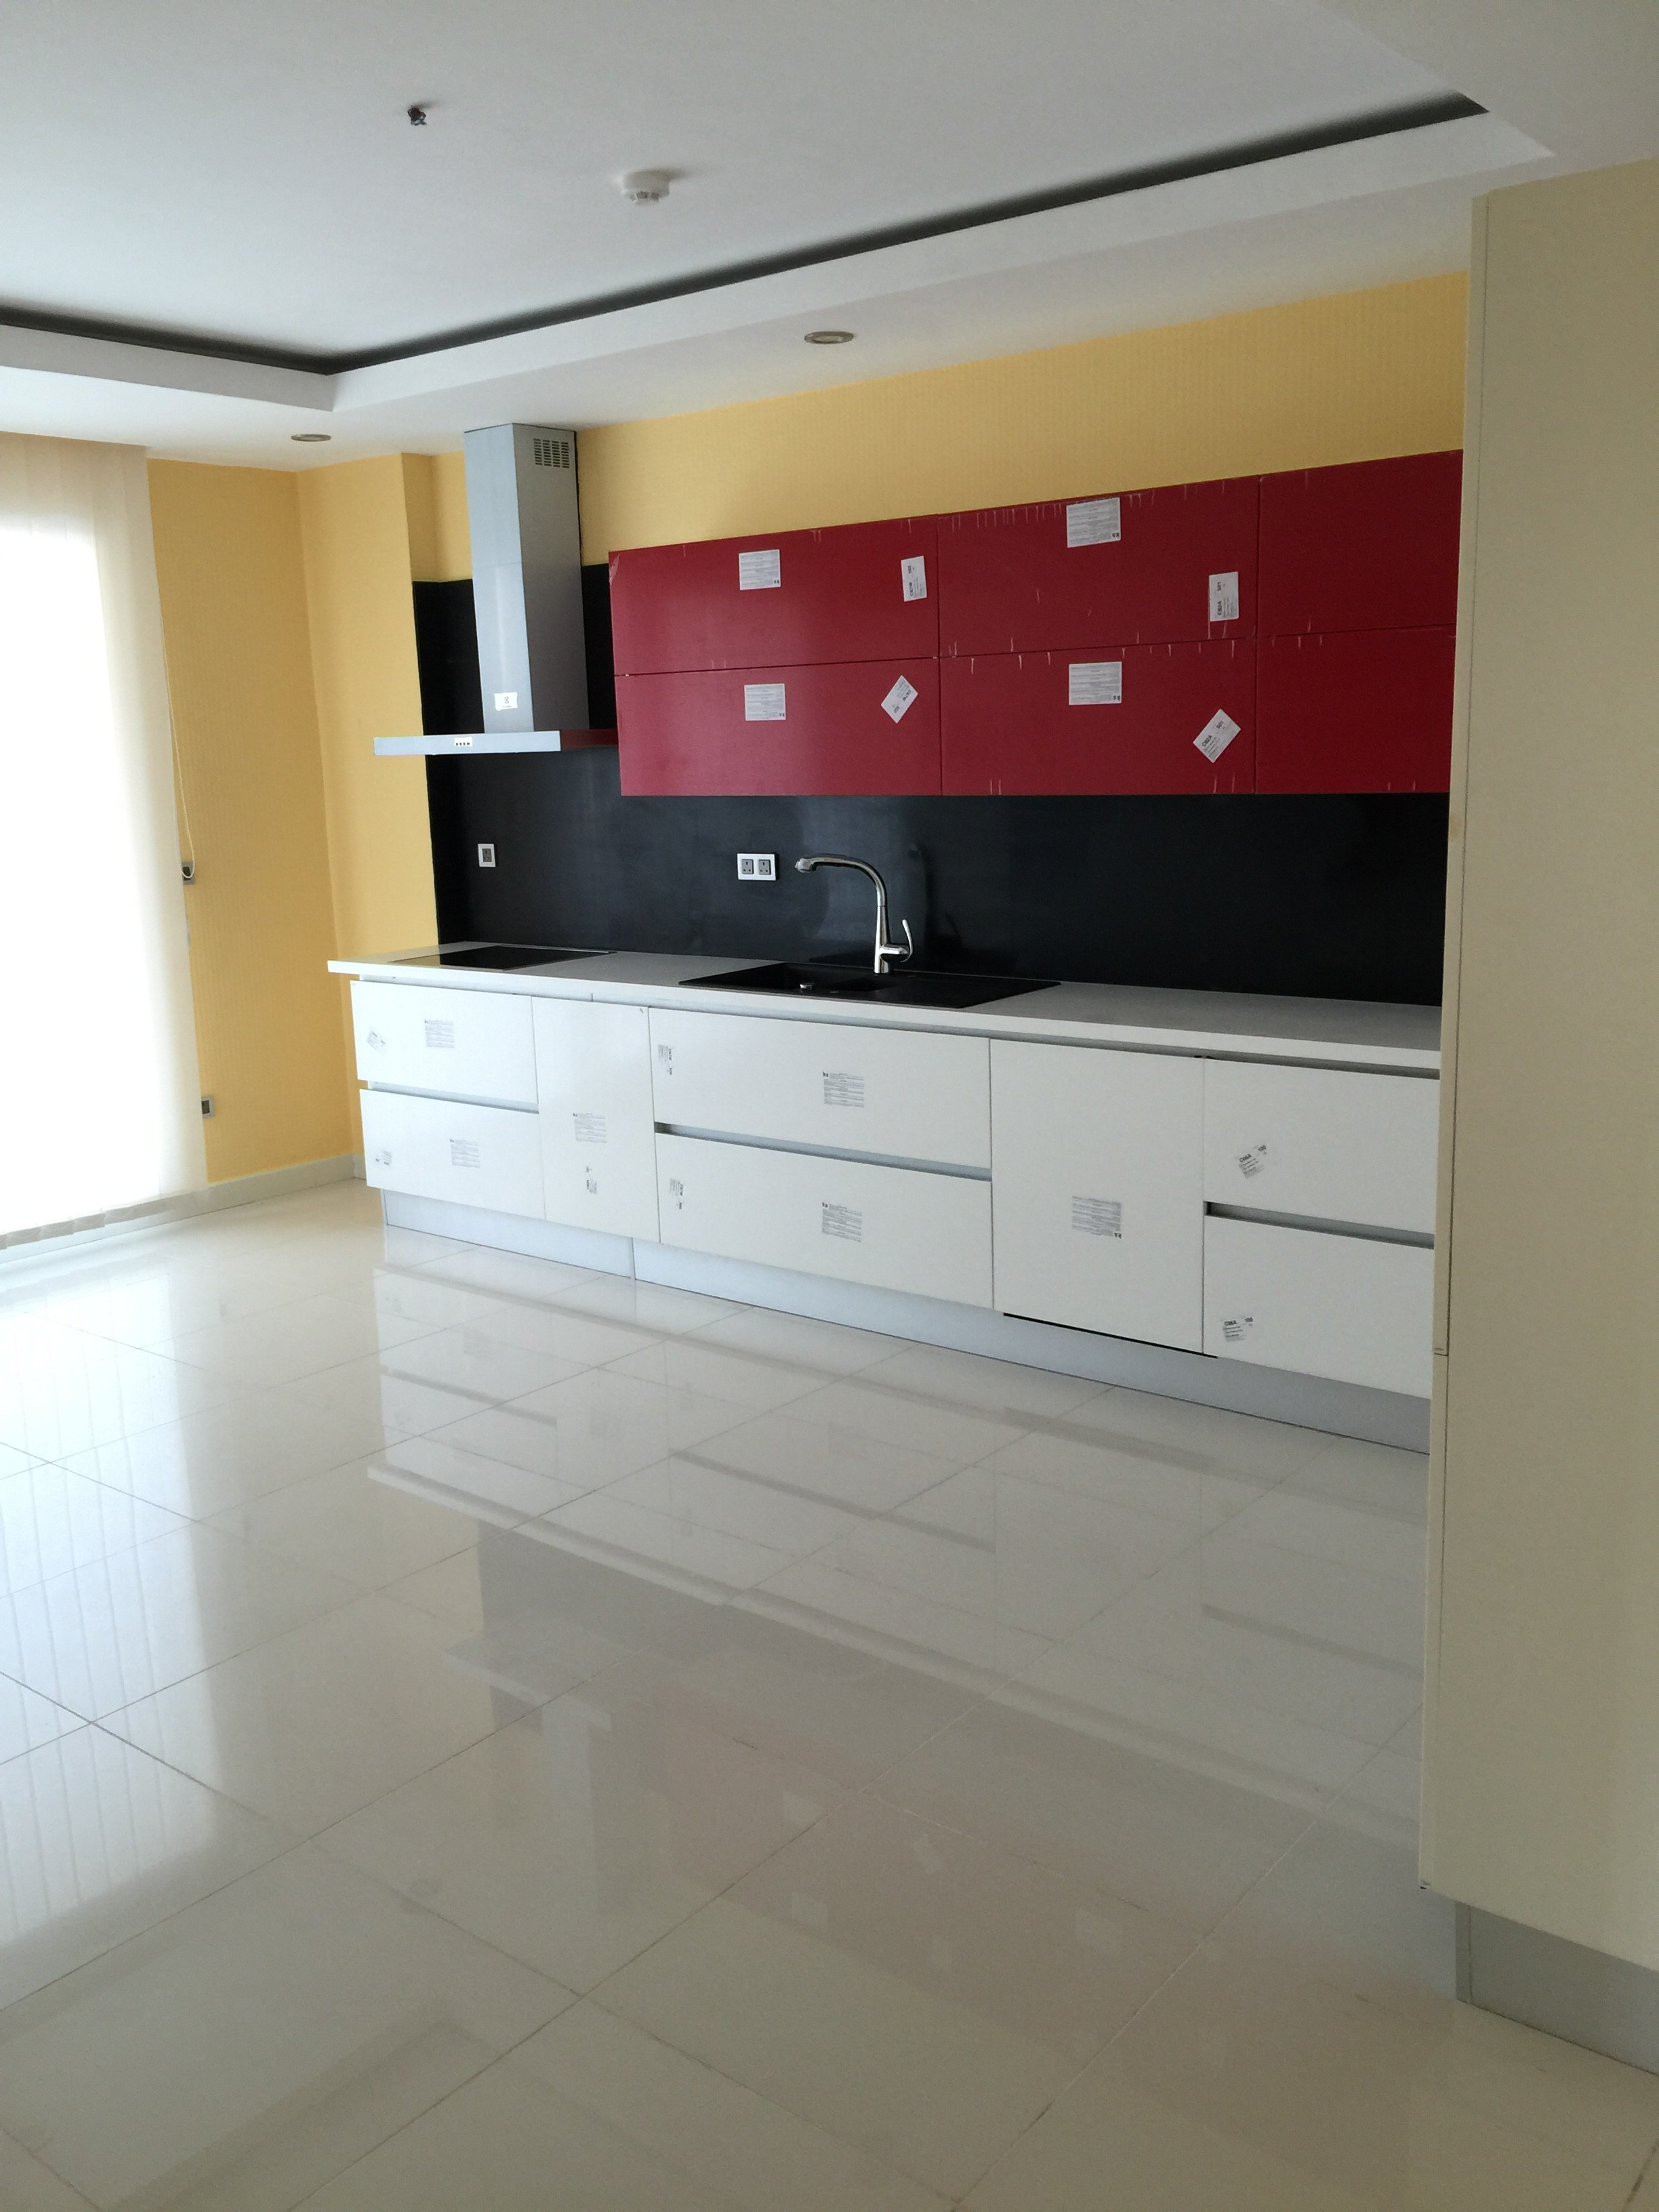 3 Bedrooms, Apartment, For Sale, Nortei Ababio Street, 4 Bathrooms, Listing ID 1020, Ghana, Ghana,